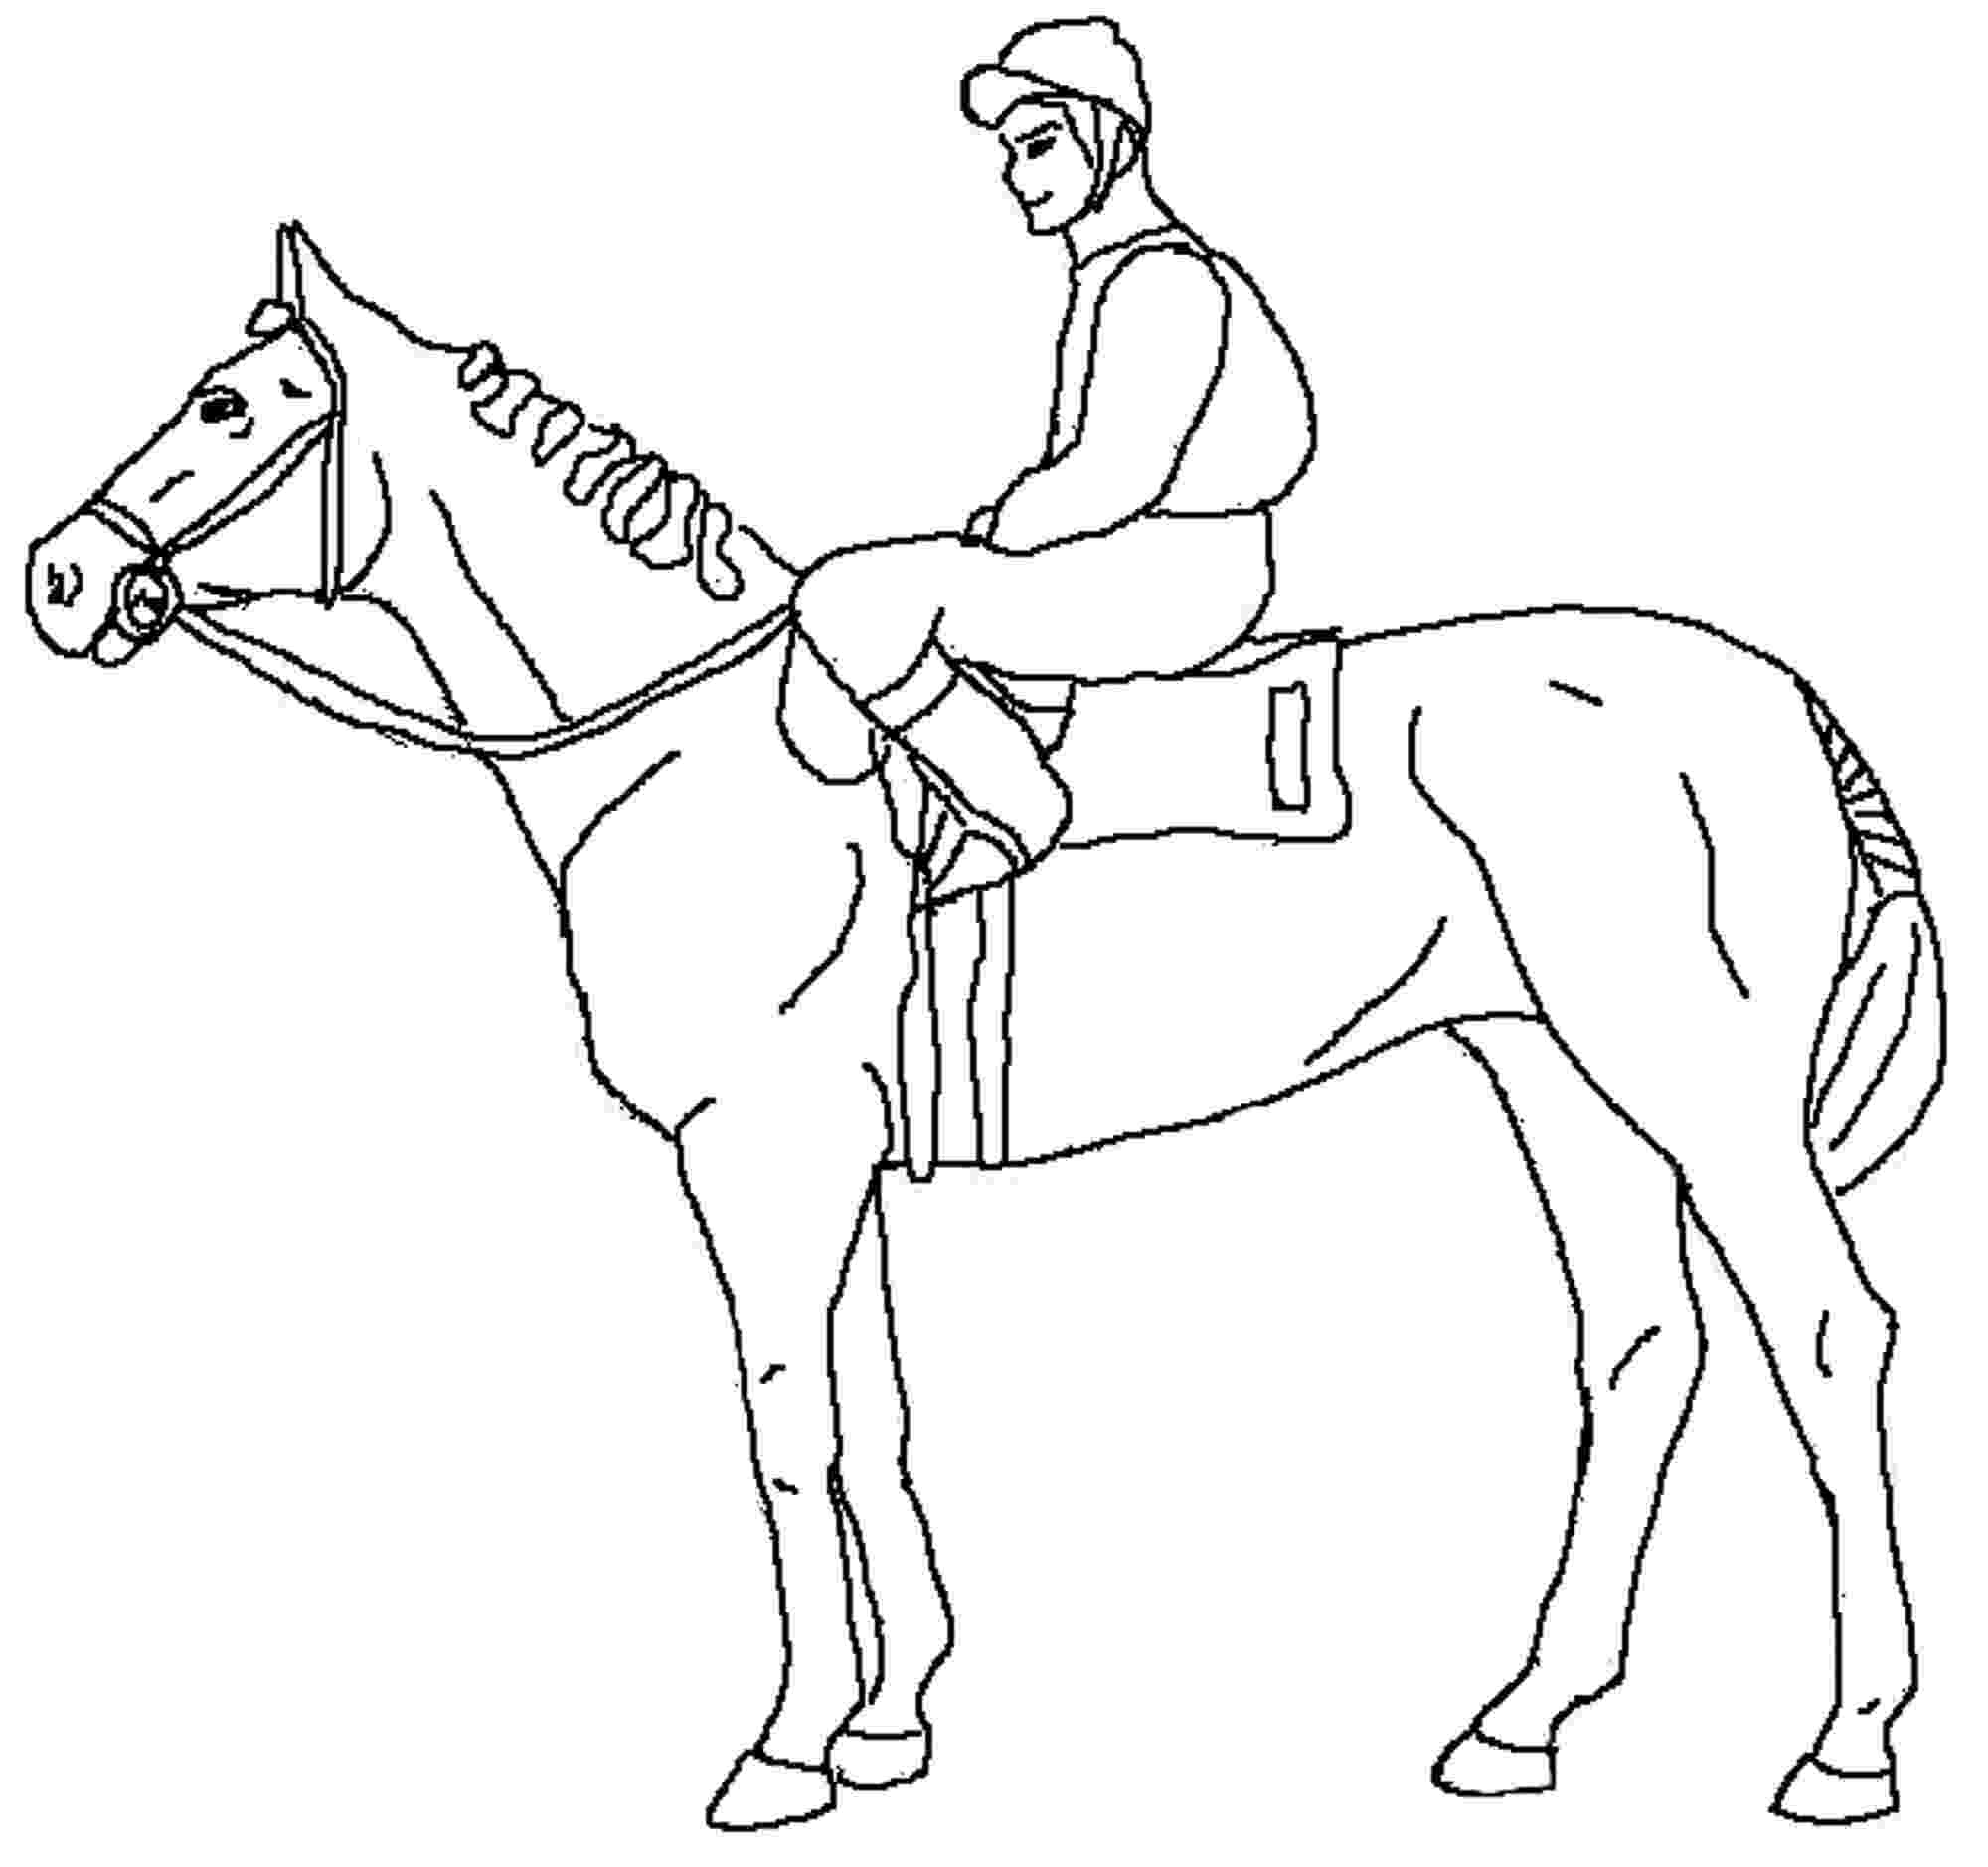 coloring book images of horses horse coloring pages for kids coloring pages for kids book images of horses coloring